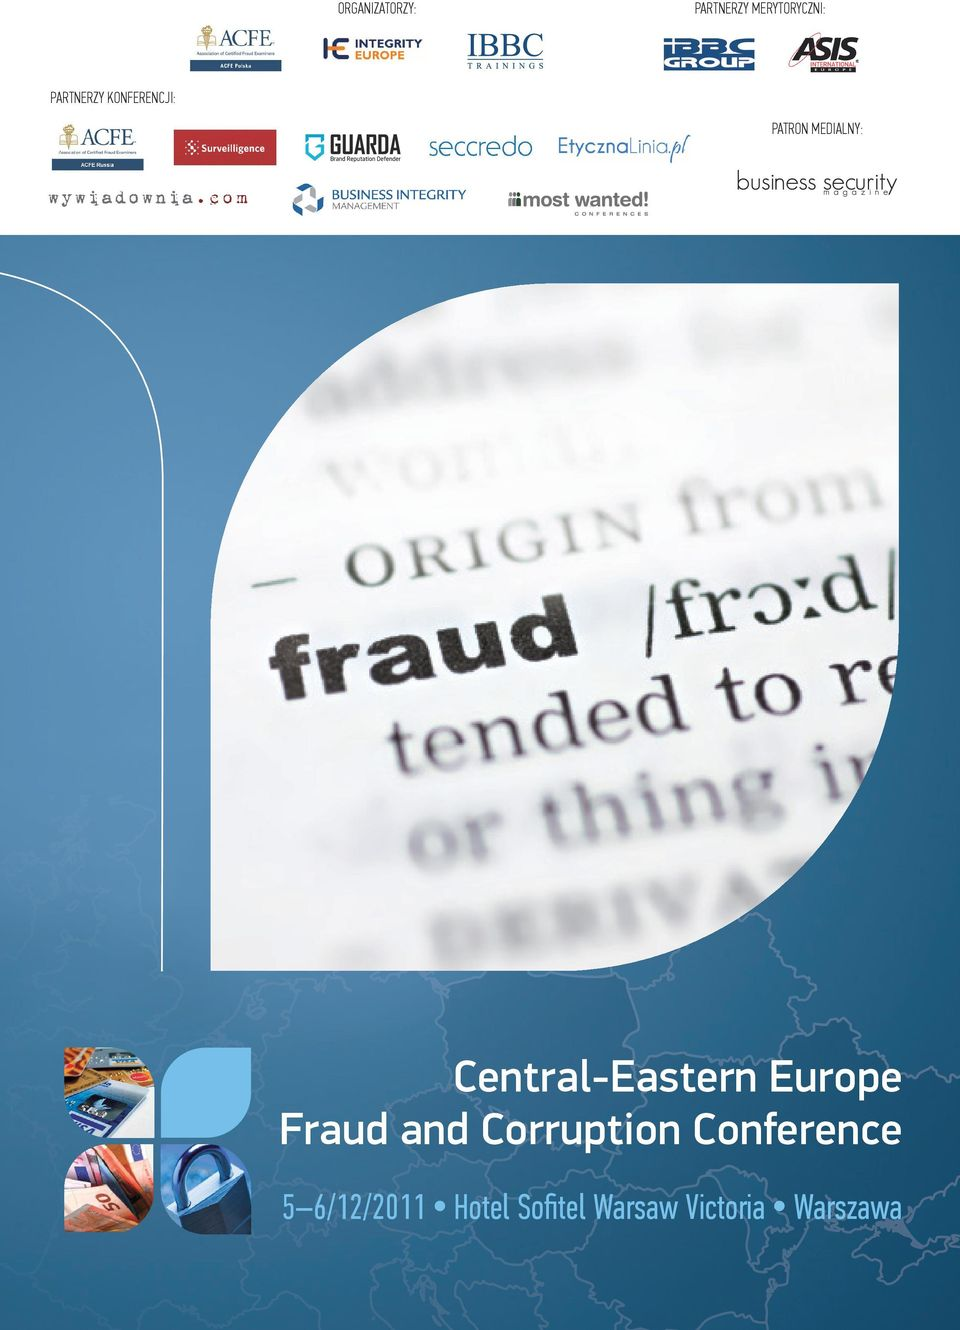 Central-Eastern Europe Fraud and Corruption